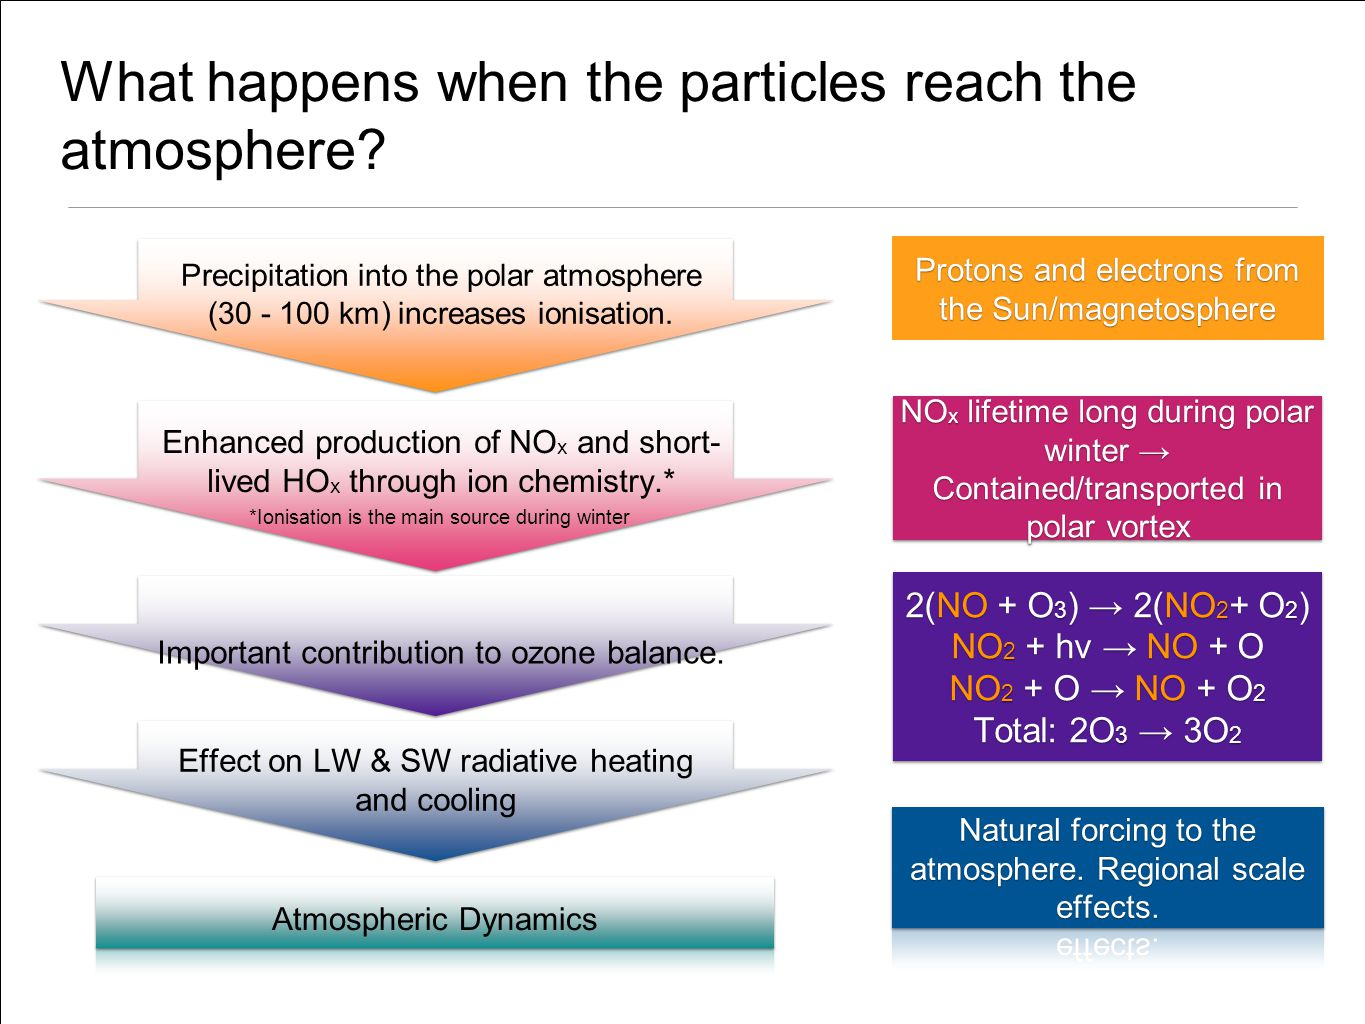 What happens when the particles reach the atmosphere.